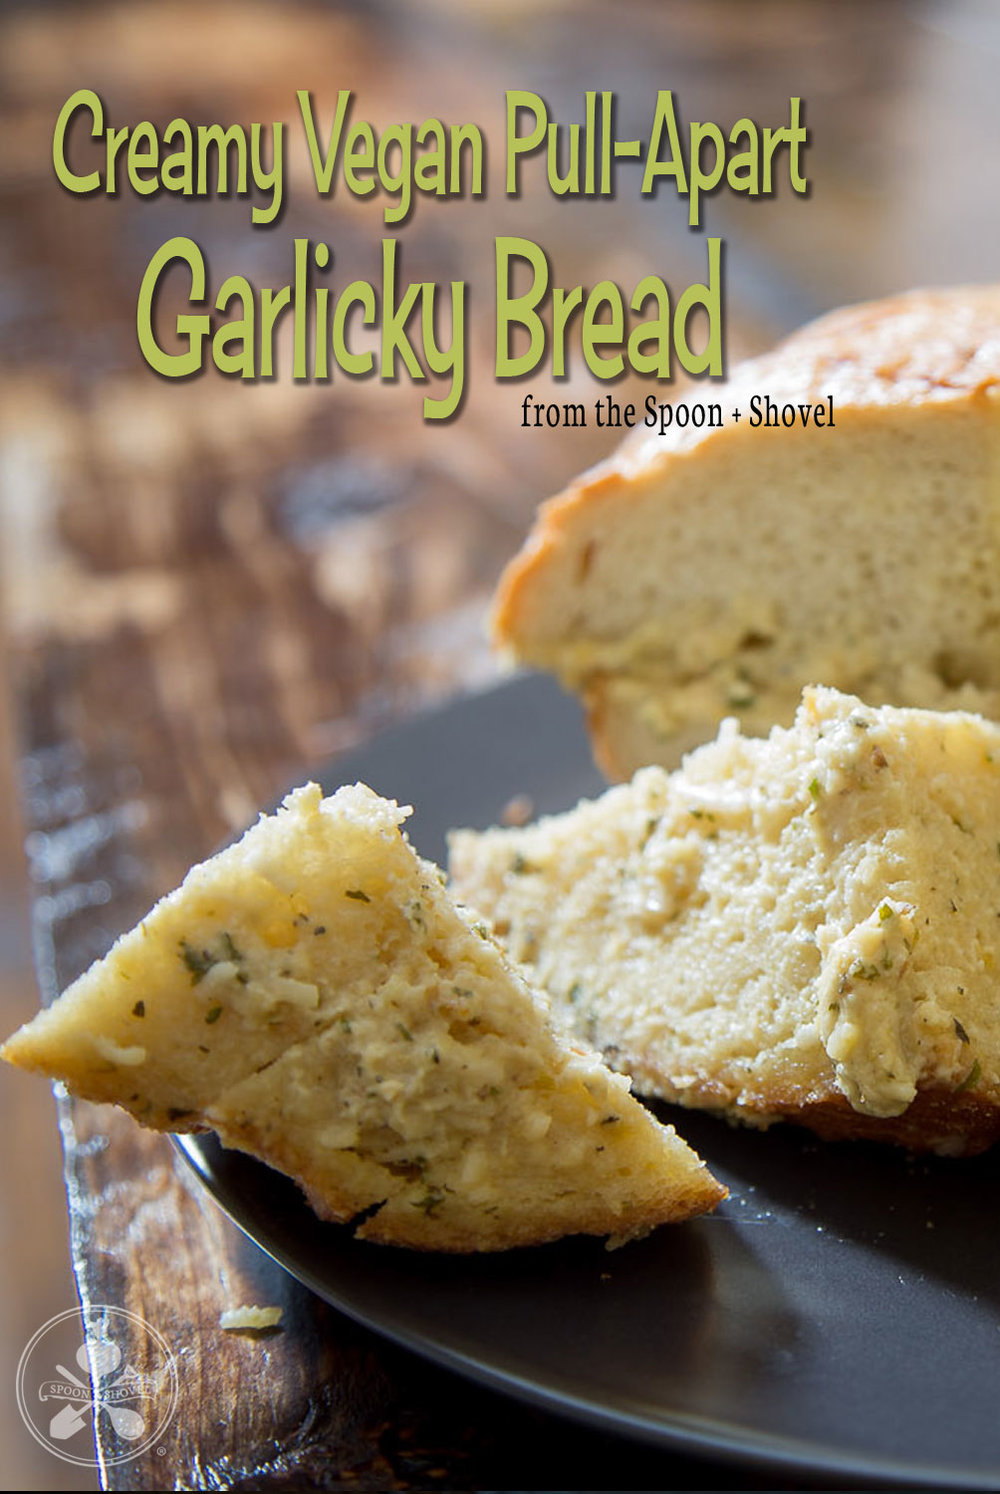 Creamy Vegan Pull-Apart Garlic Bread from The Spoon + Shovel